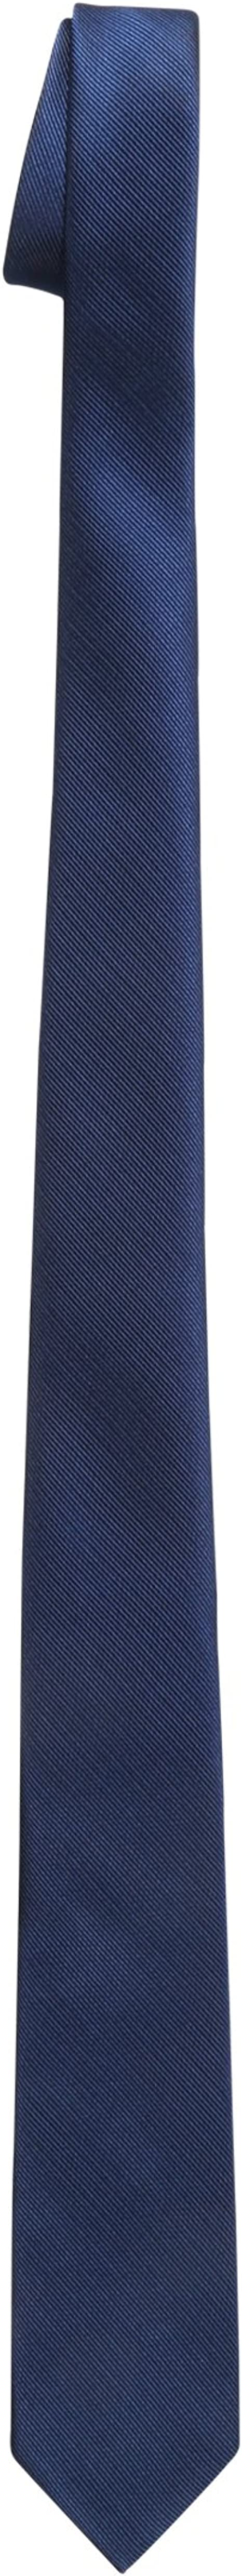 Lower East Le239 Corbata, Azul (Navy), Talla única: Amazon.es ...